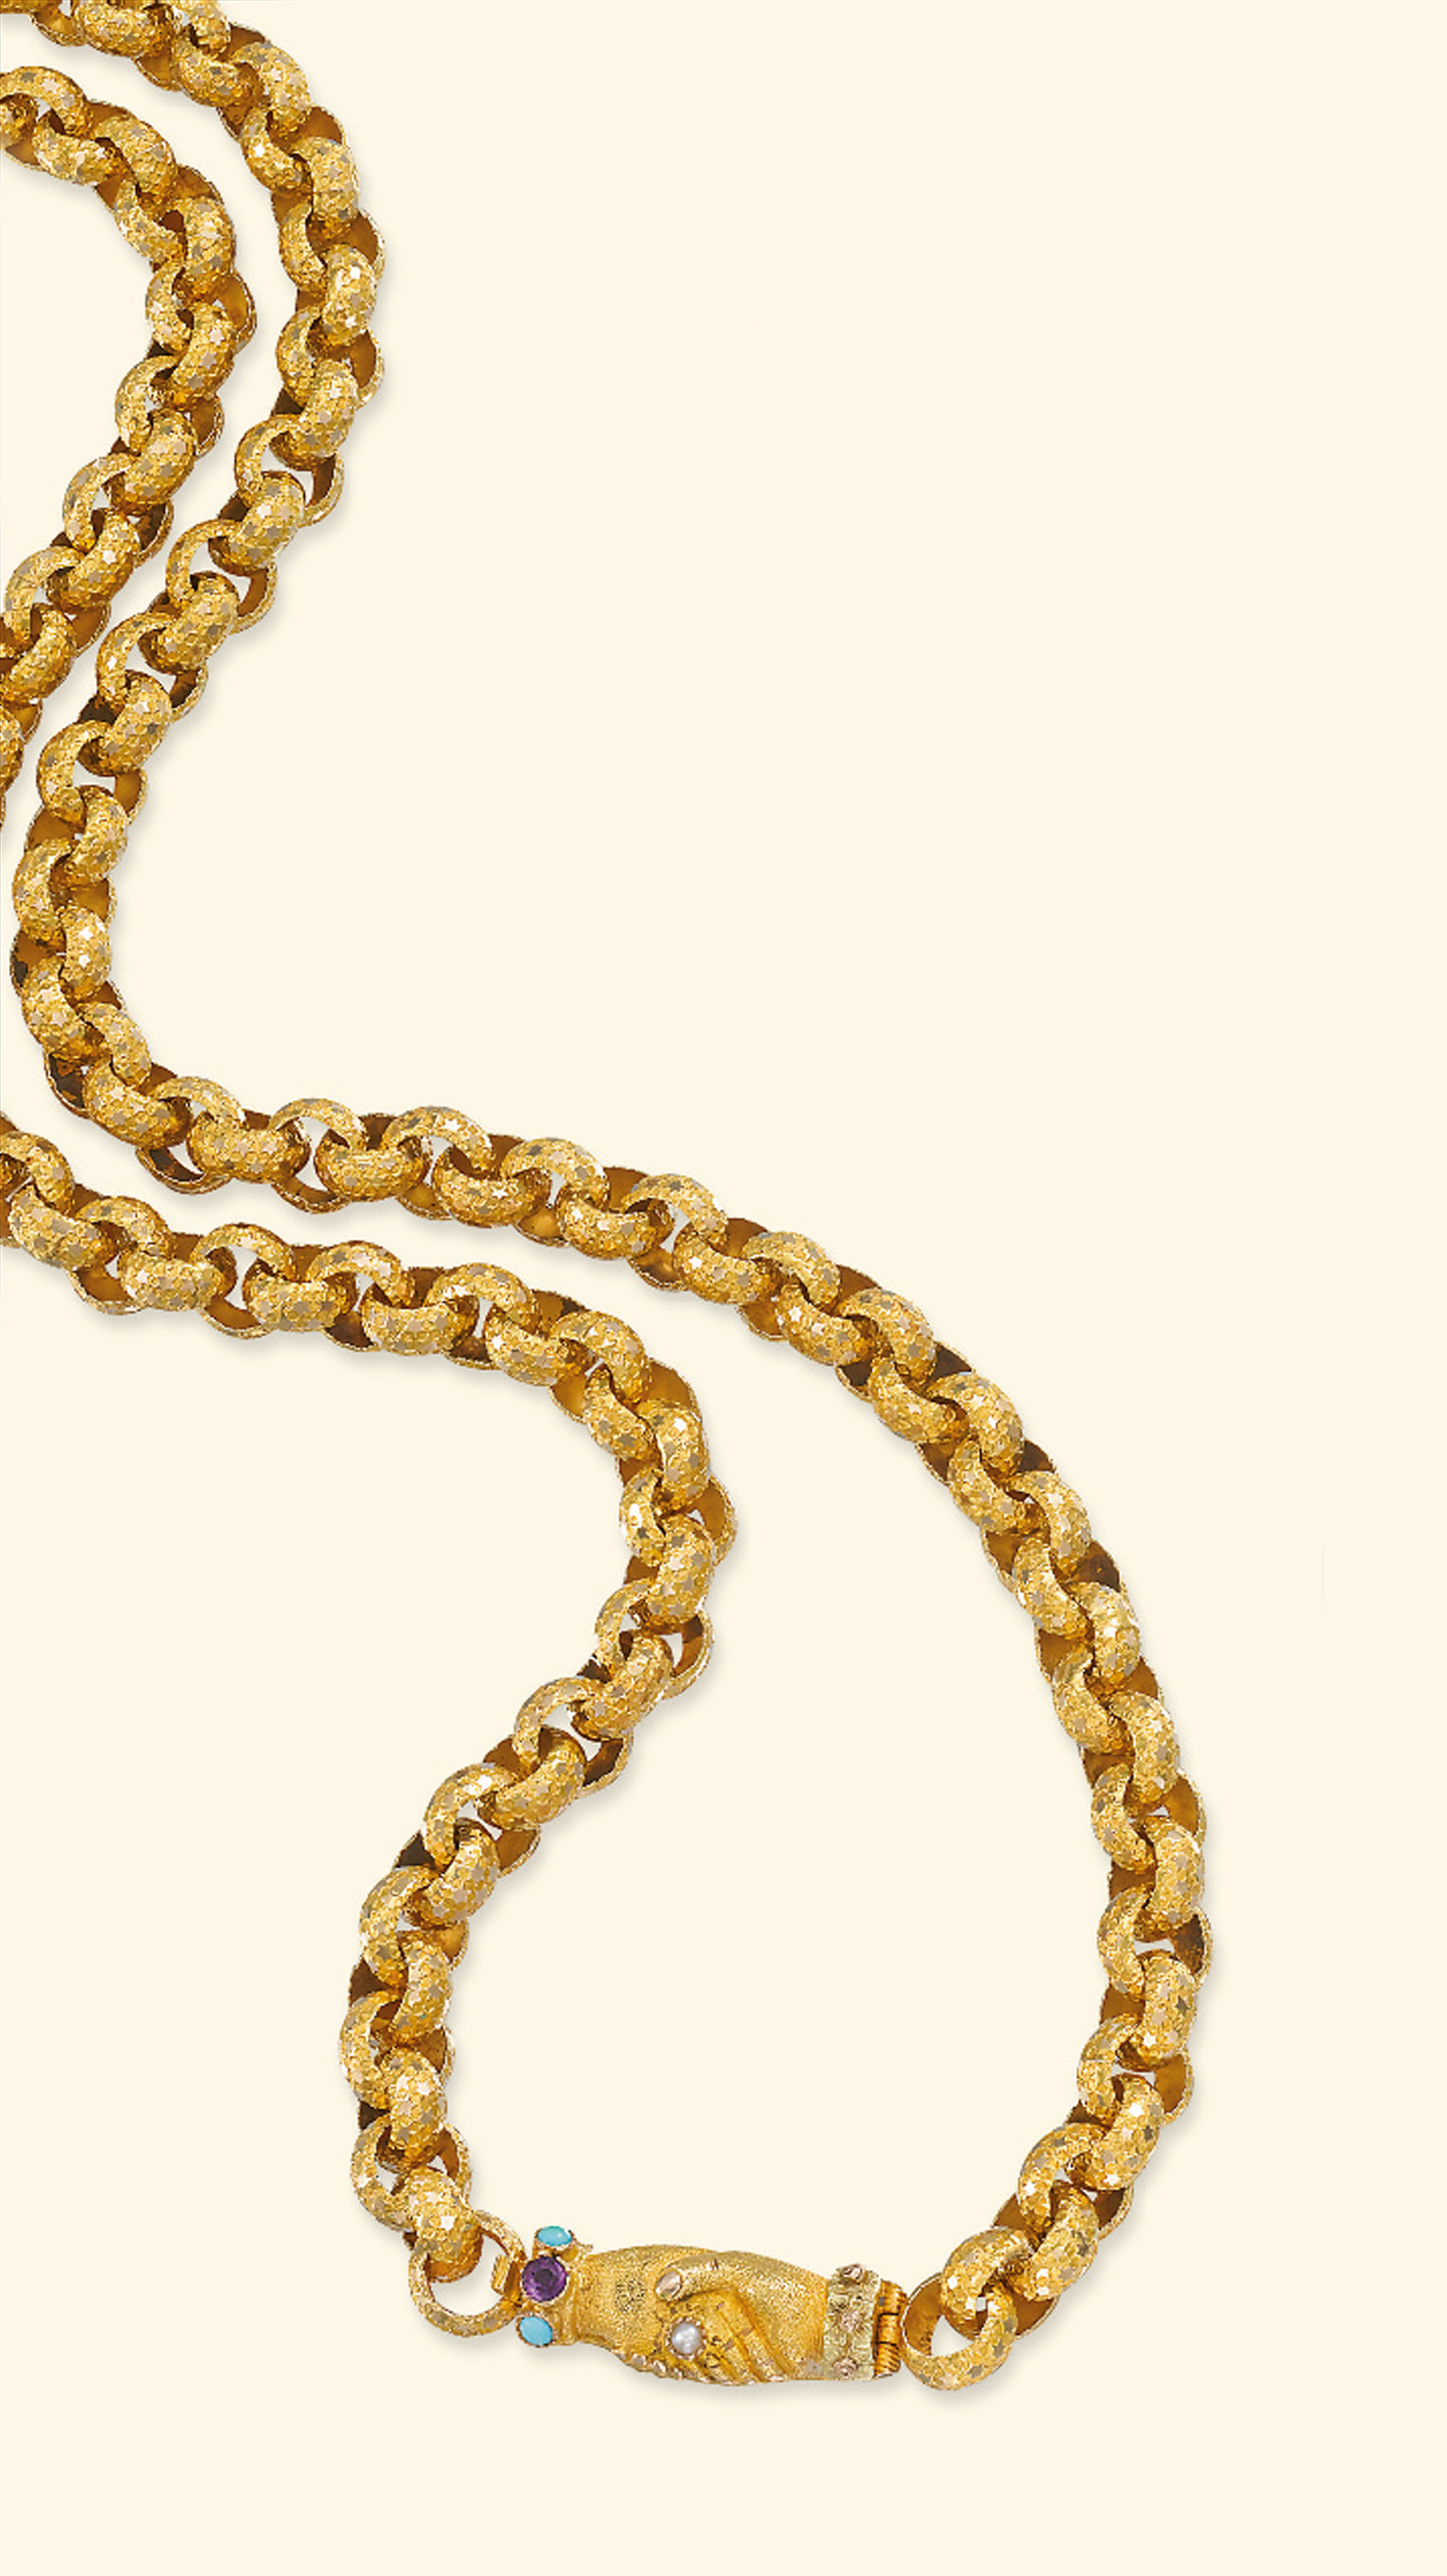 A 19TH CENTURY GOLD LONGCHAIN